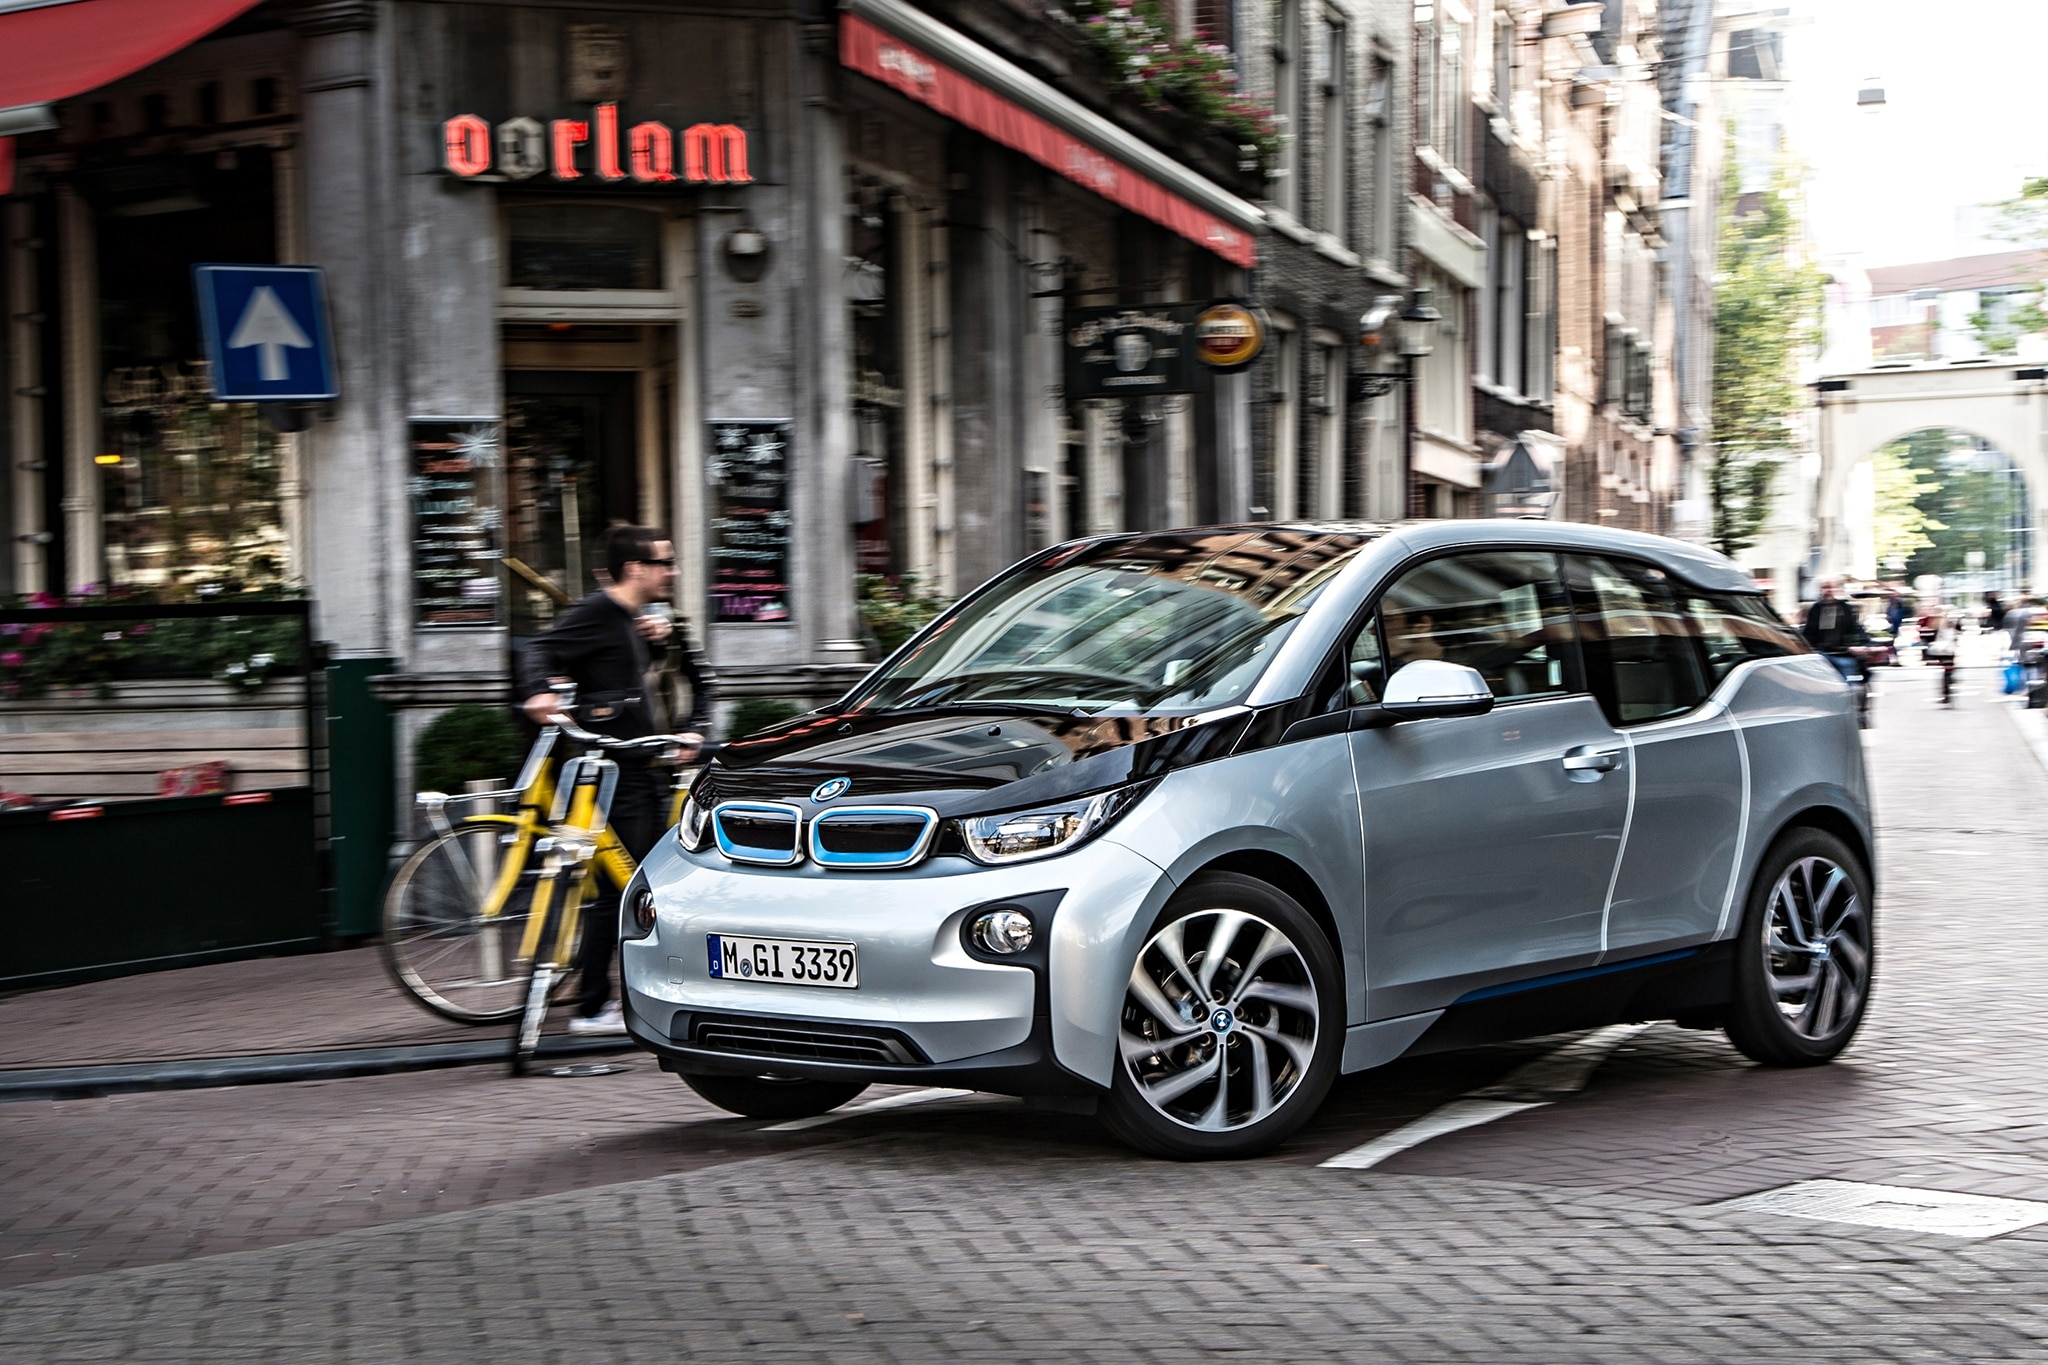 2014 BMW I3 EDrive Three Quarters In Motion City1